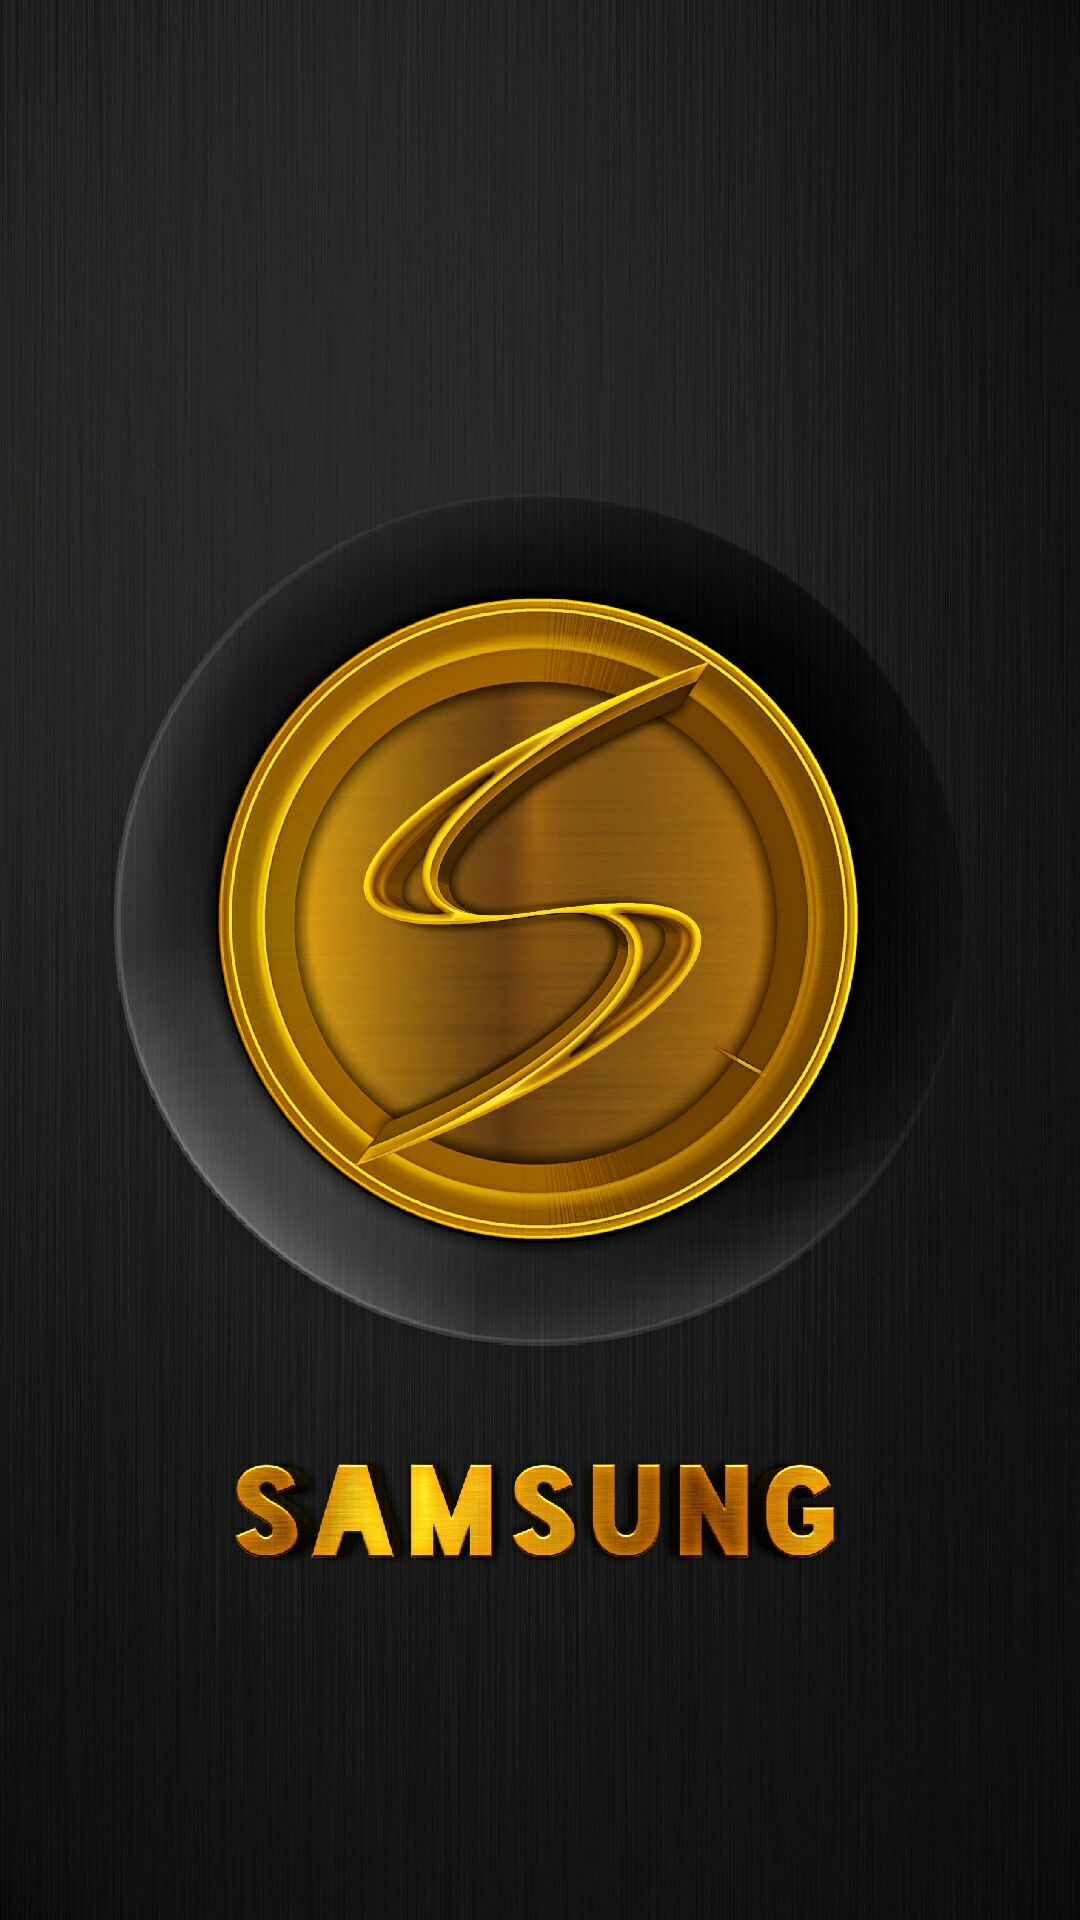 Samsung Gold Black Wallpapers For Phones Wallpaper Iphone